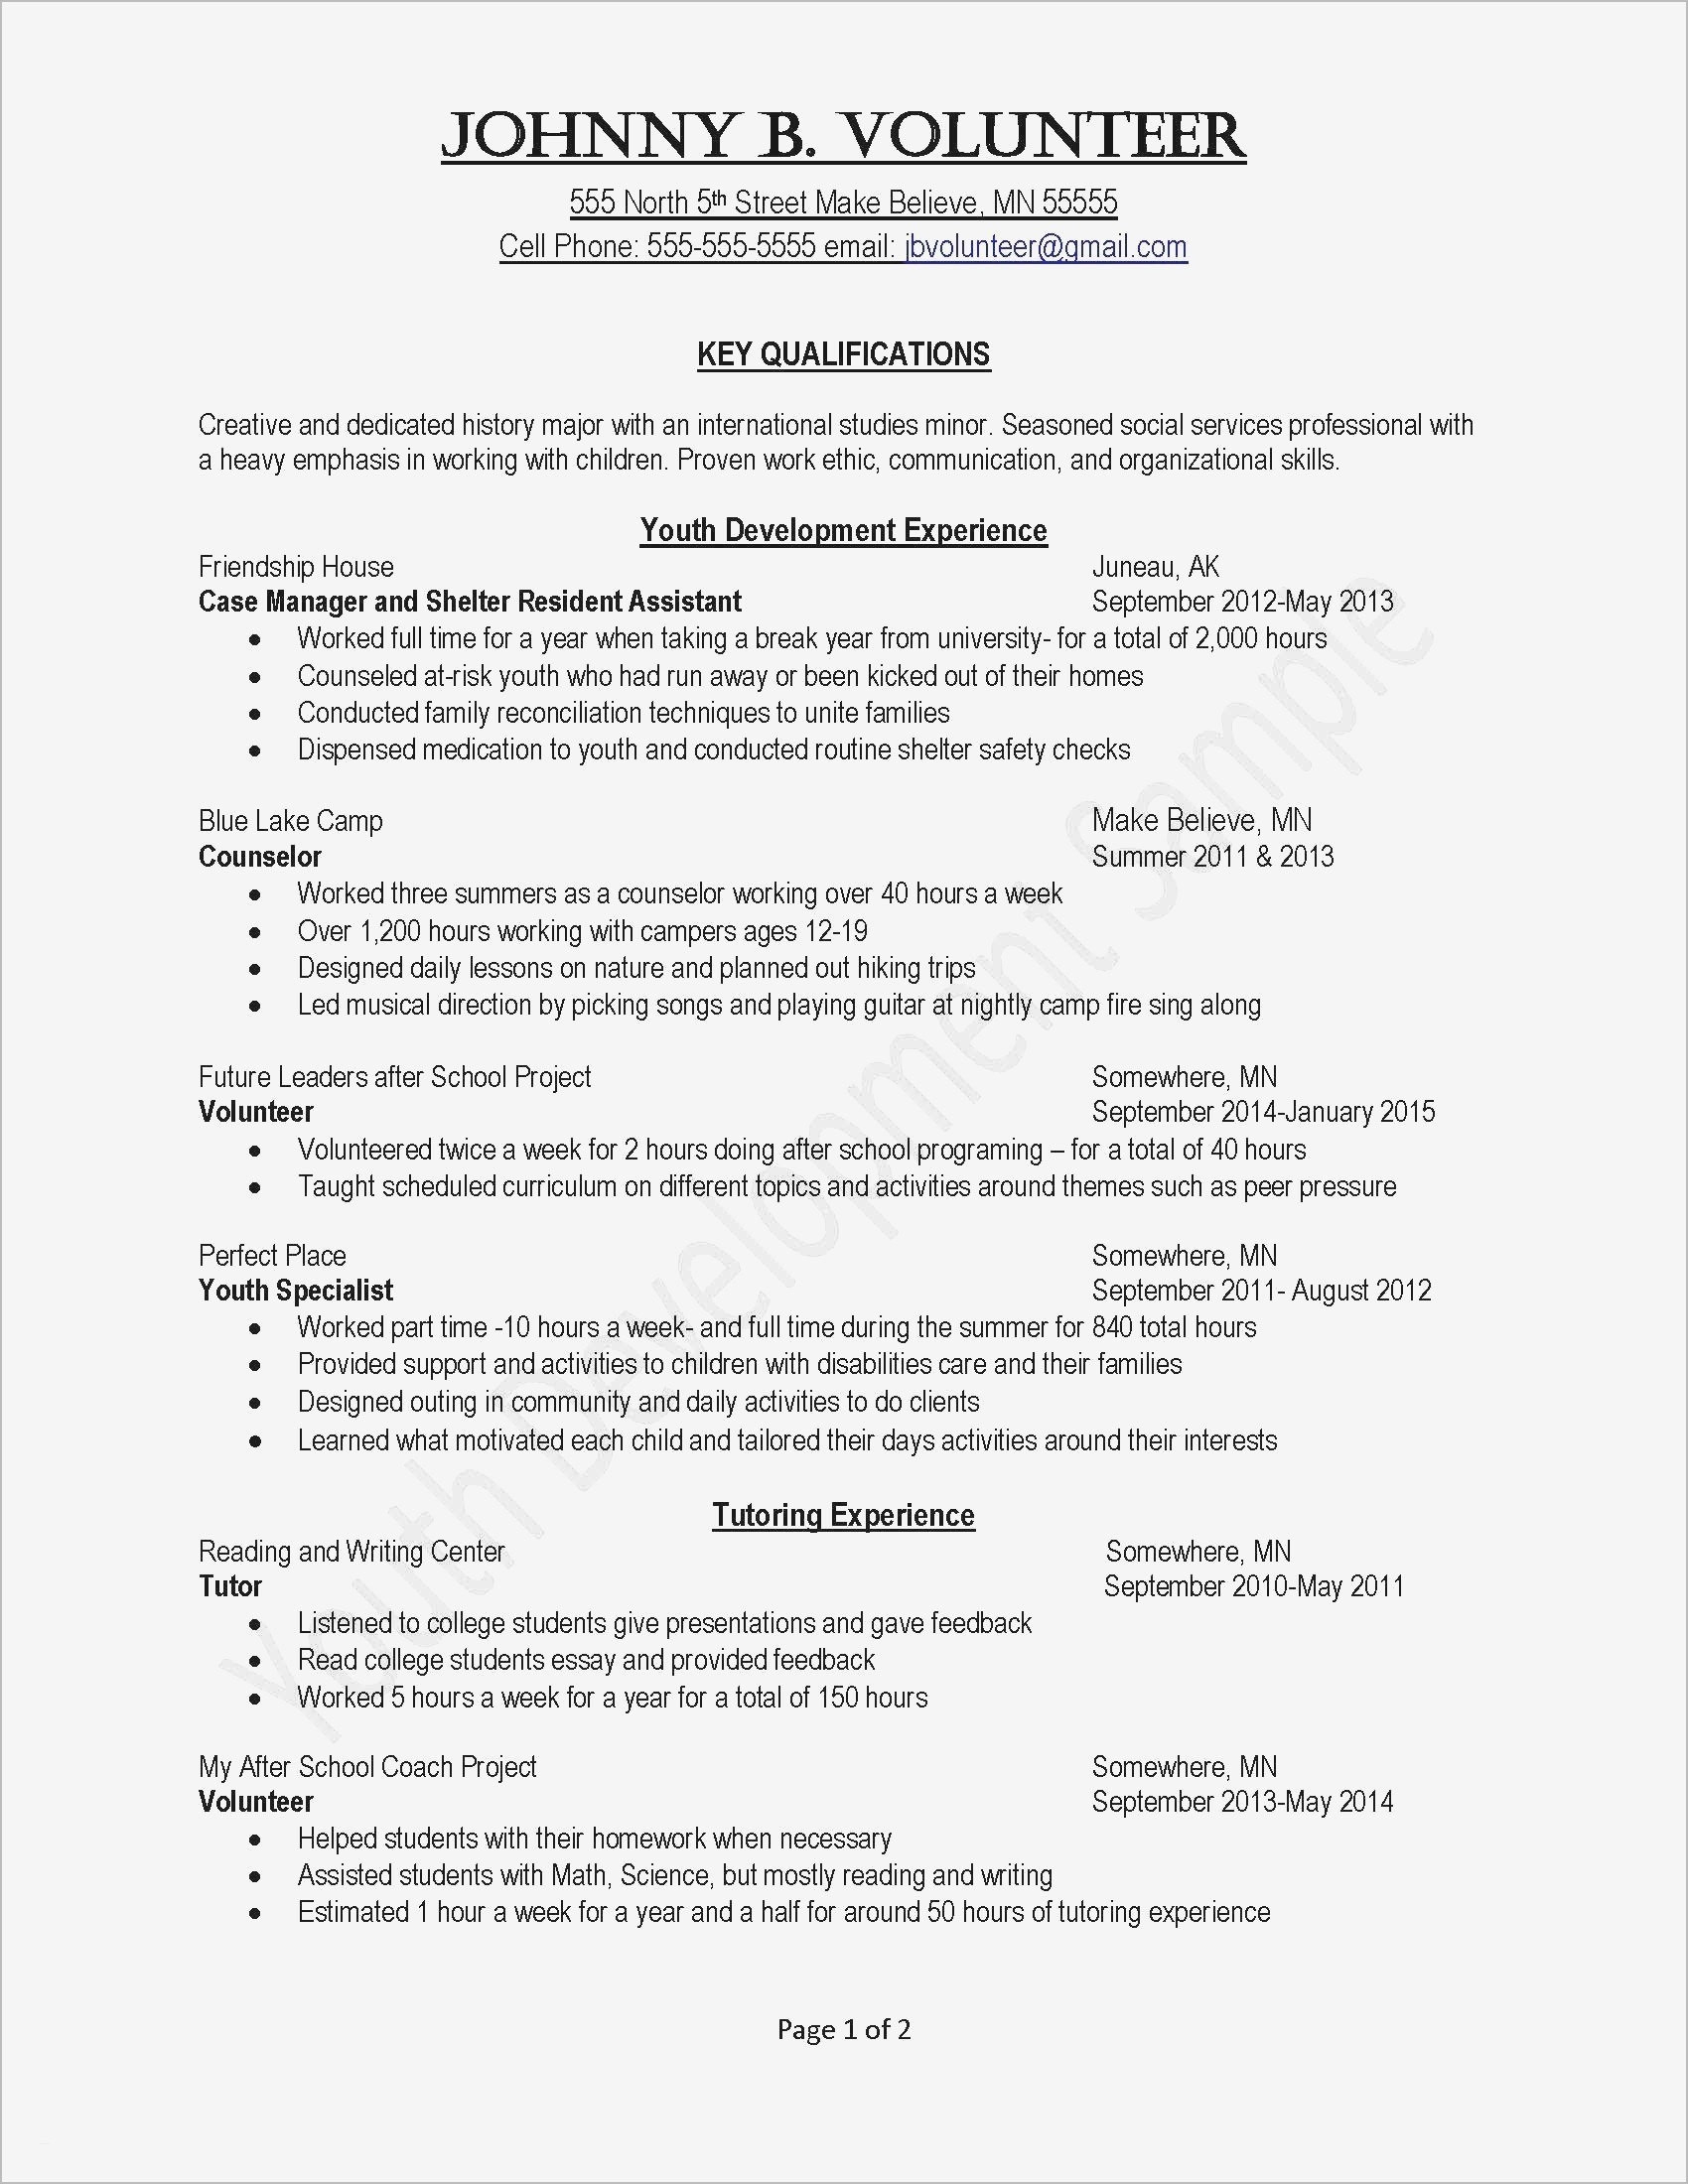 Social Work Resume Template Free - Template for A Resume Inspirationa Cfo Resume Template Inspirational